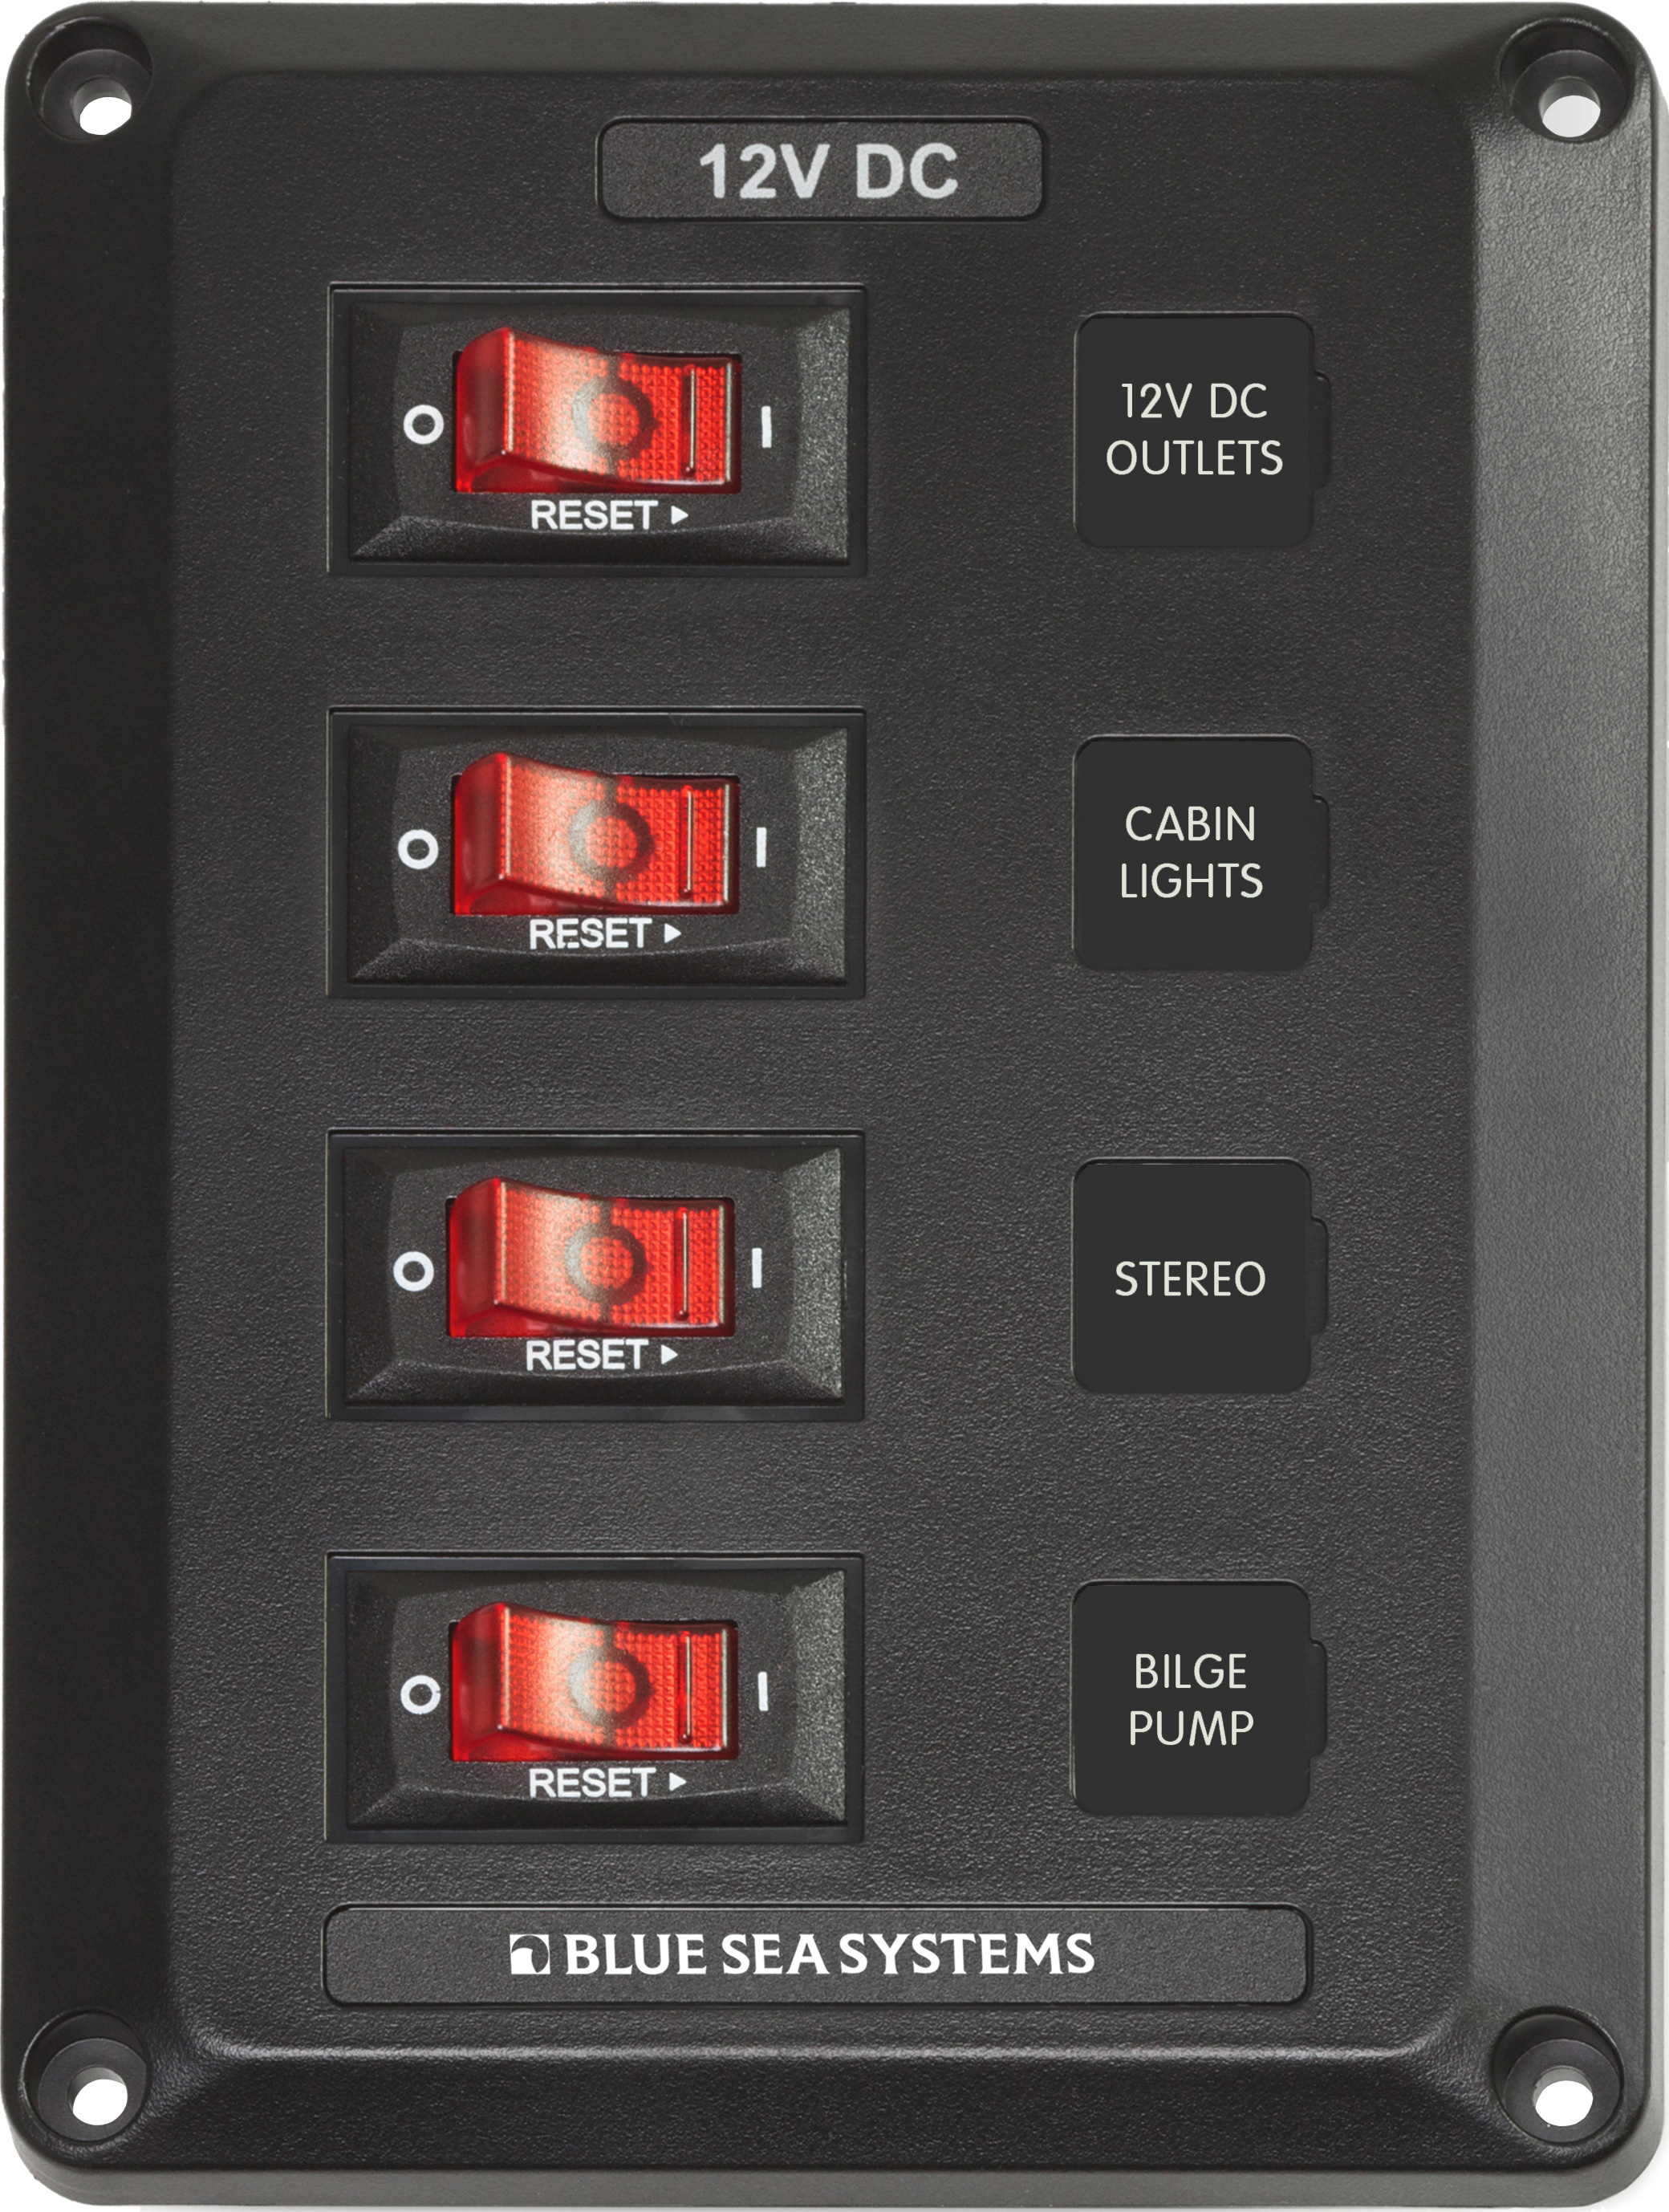 4 Position Belowdeck Circuit Breaker Panel Blue Sea Systems Wiring Main Product Image